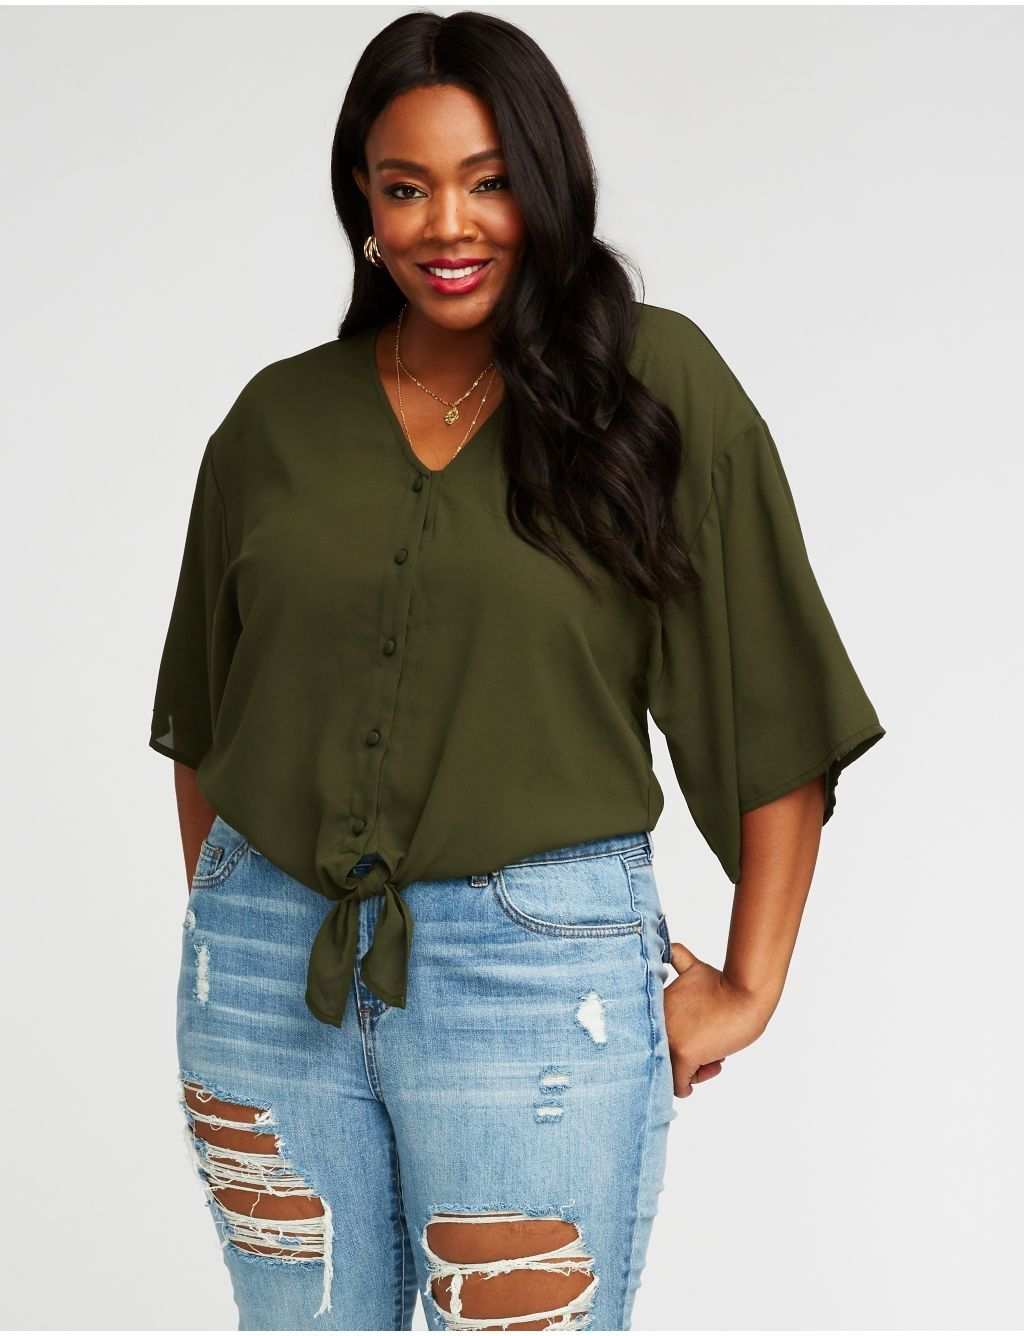 08af80547ec Charlotte Russe Plus Size Tie Front Button Up Top Price in Egypt ...